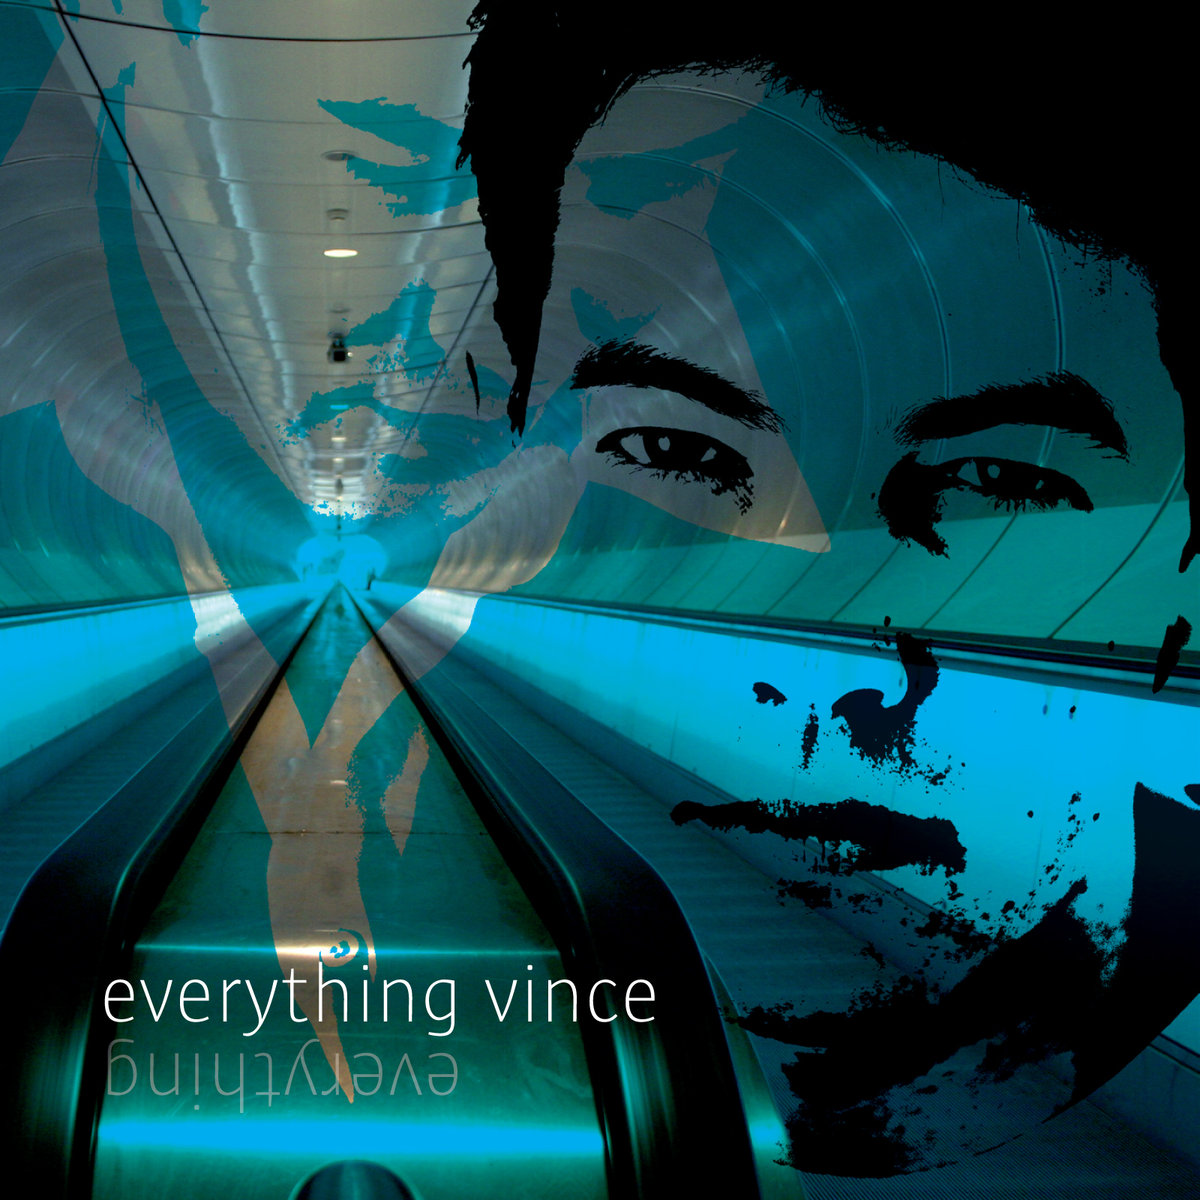 Vince - Everything (artwork)